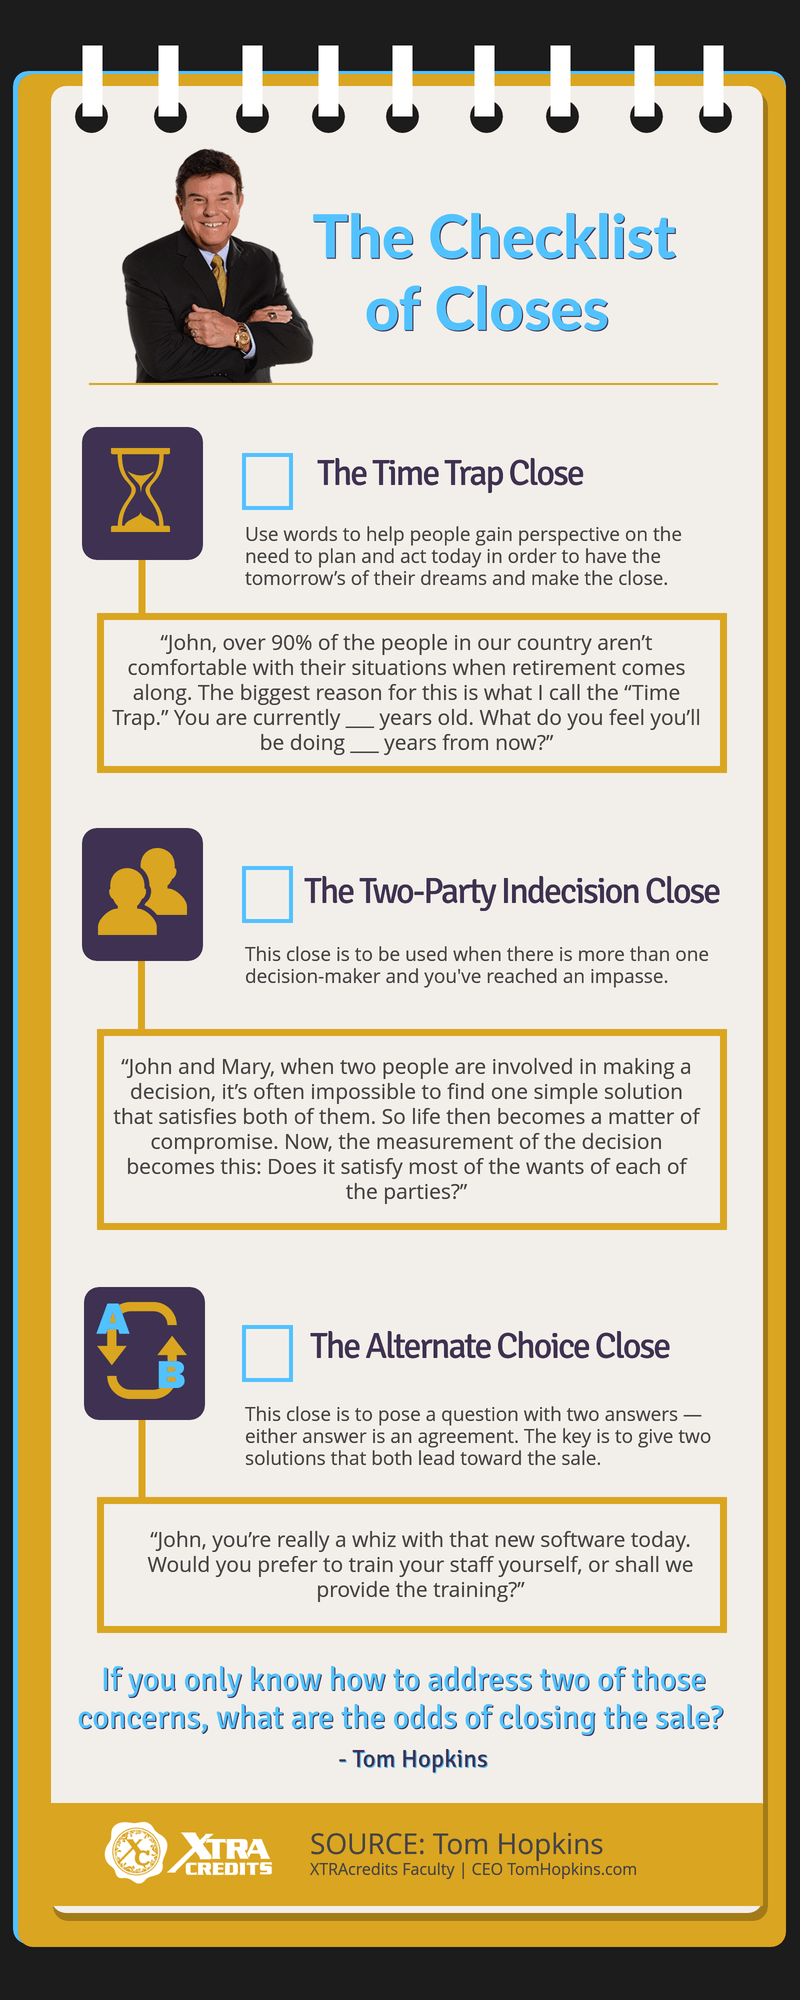 https://cdn.shopify.com/s/files/1/0137/7435/6534/files/TH-close-checklist-infographic.png?1620